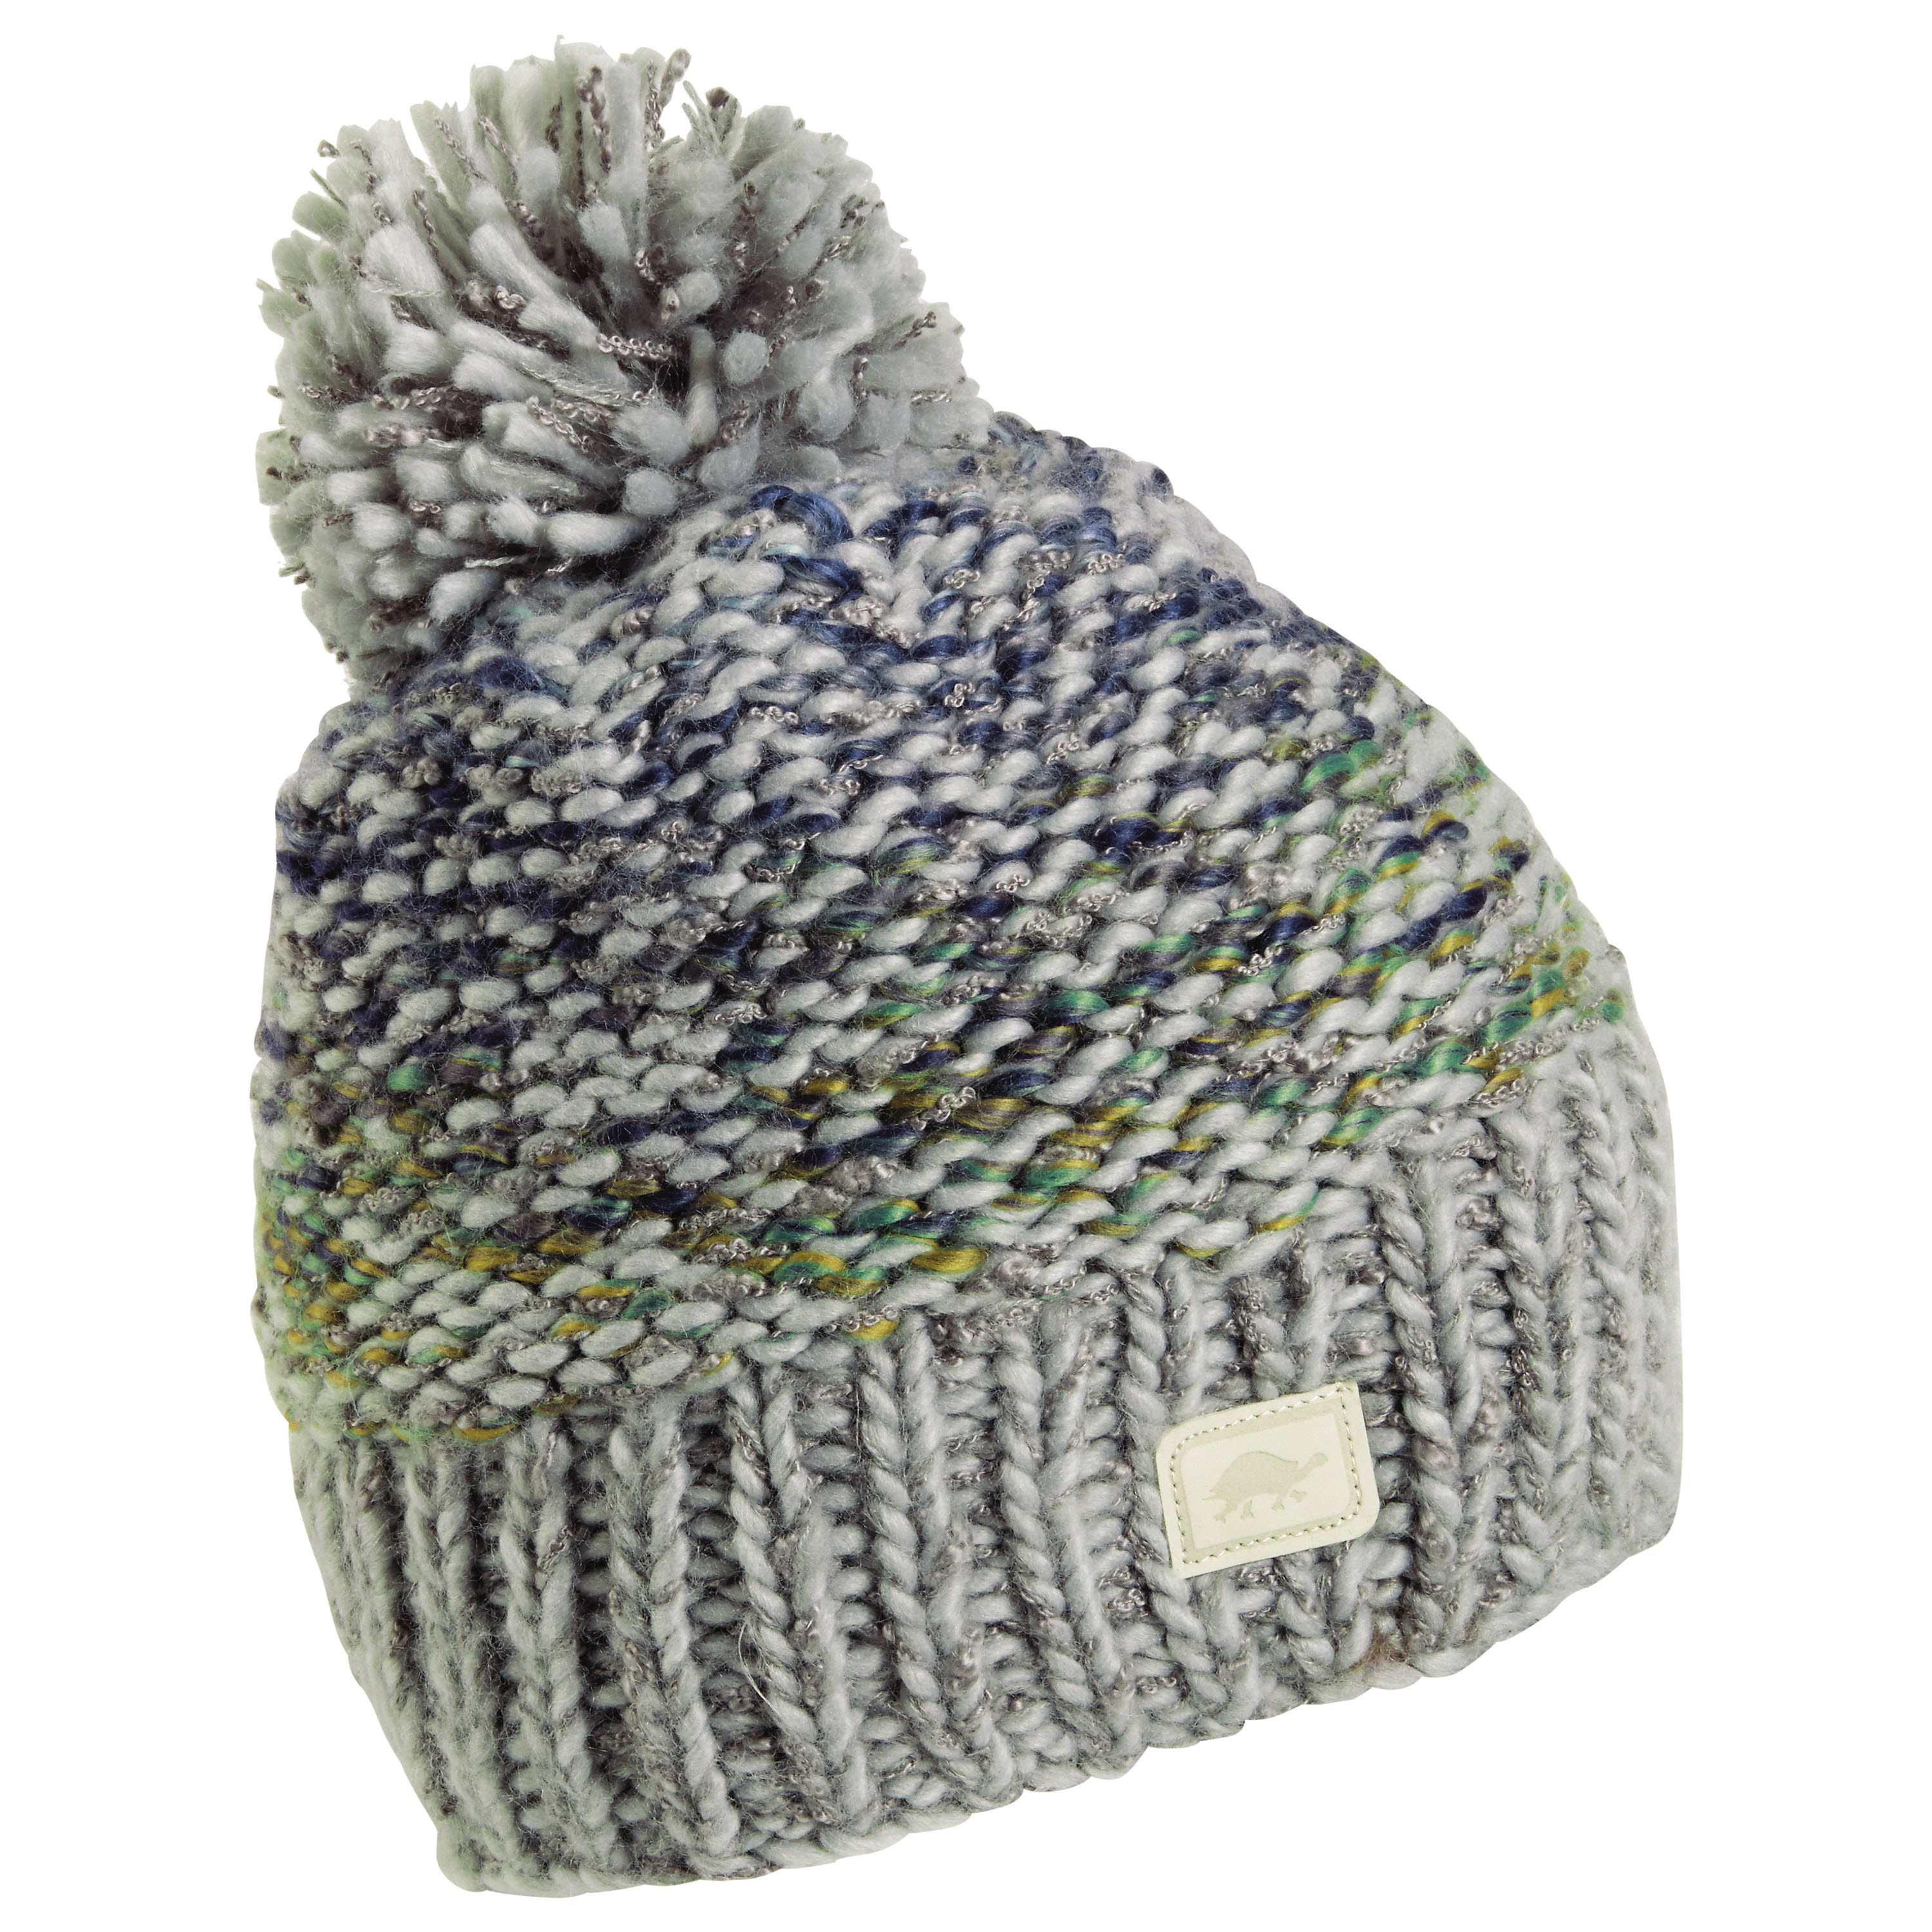 2b9fd2ac789 Turtle Fur - Turtle Fur Firefly Women's Relaxed Fit Hand Knit Winter Hat  Lined w/ Fleece - Walmart.com